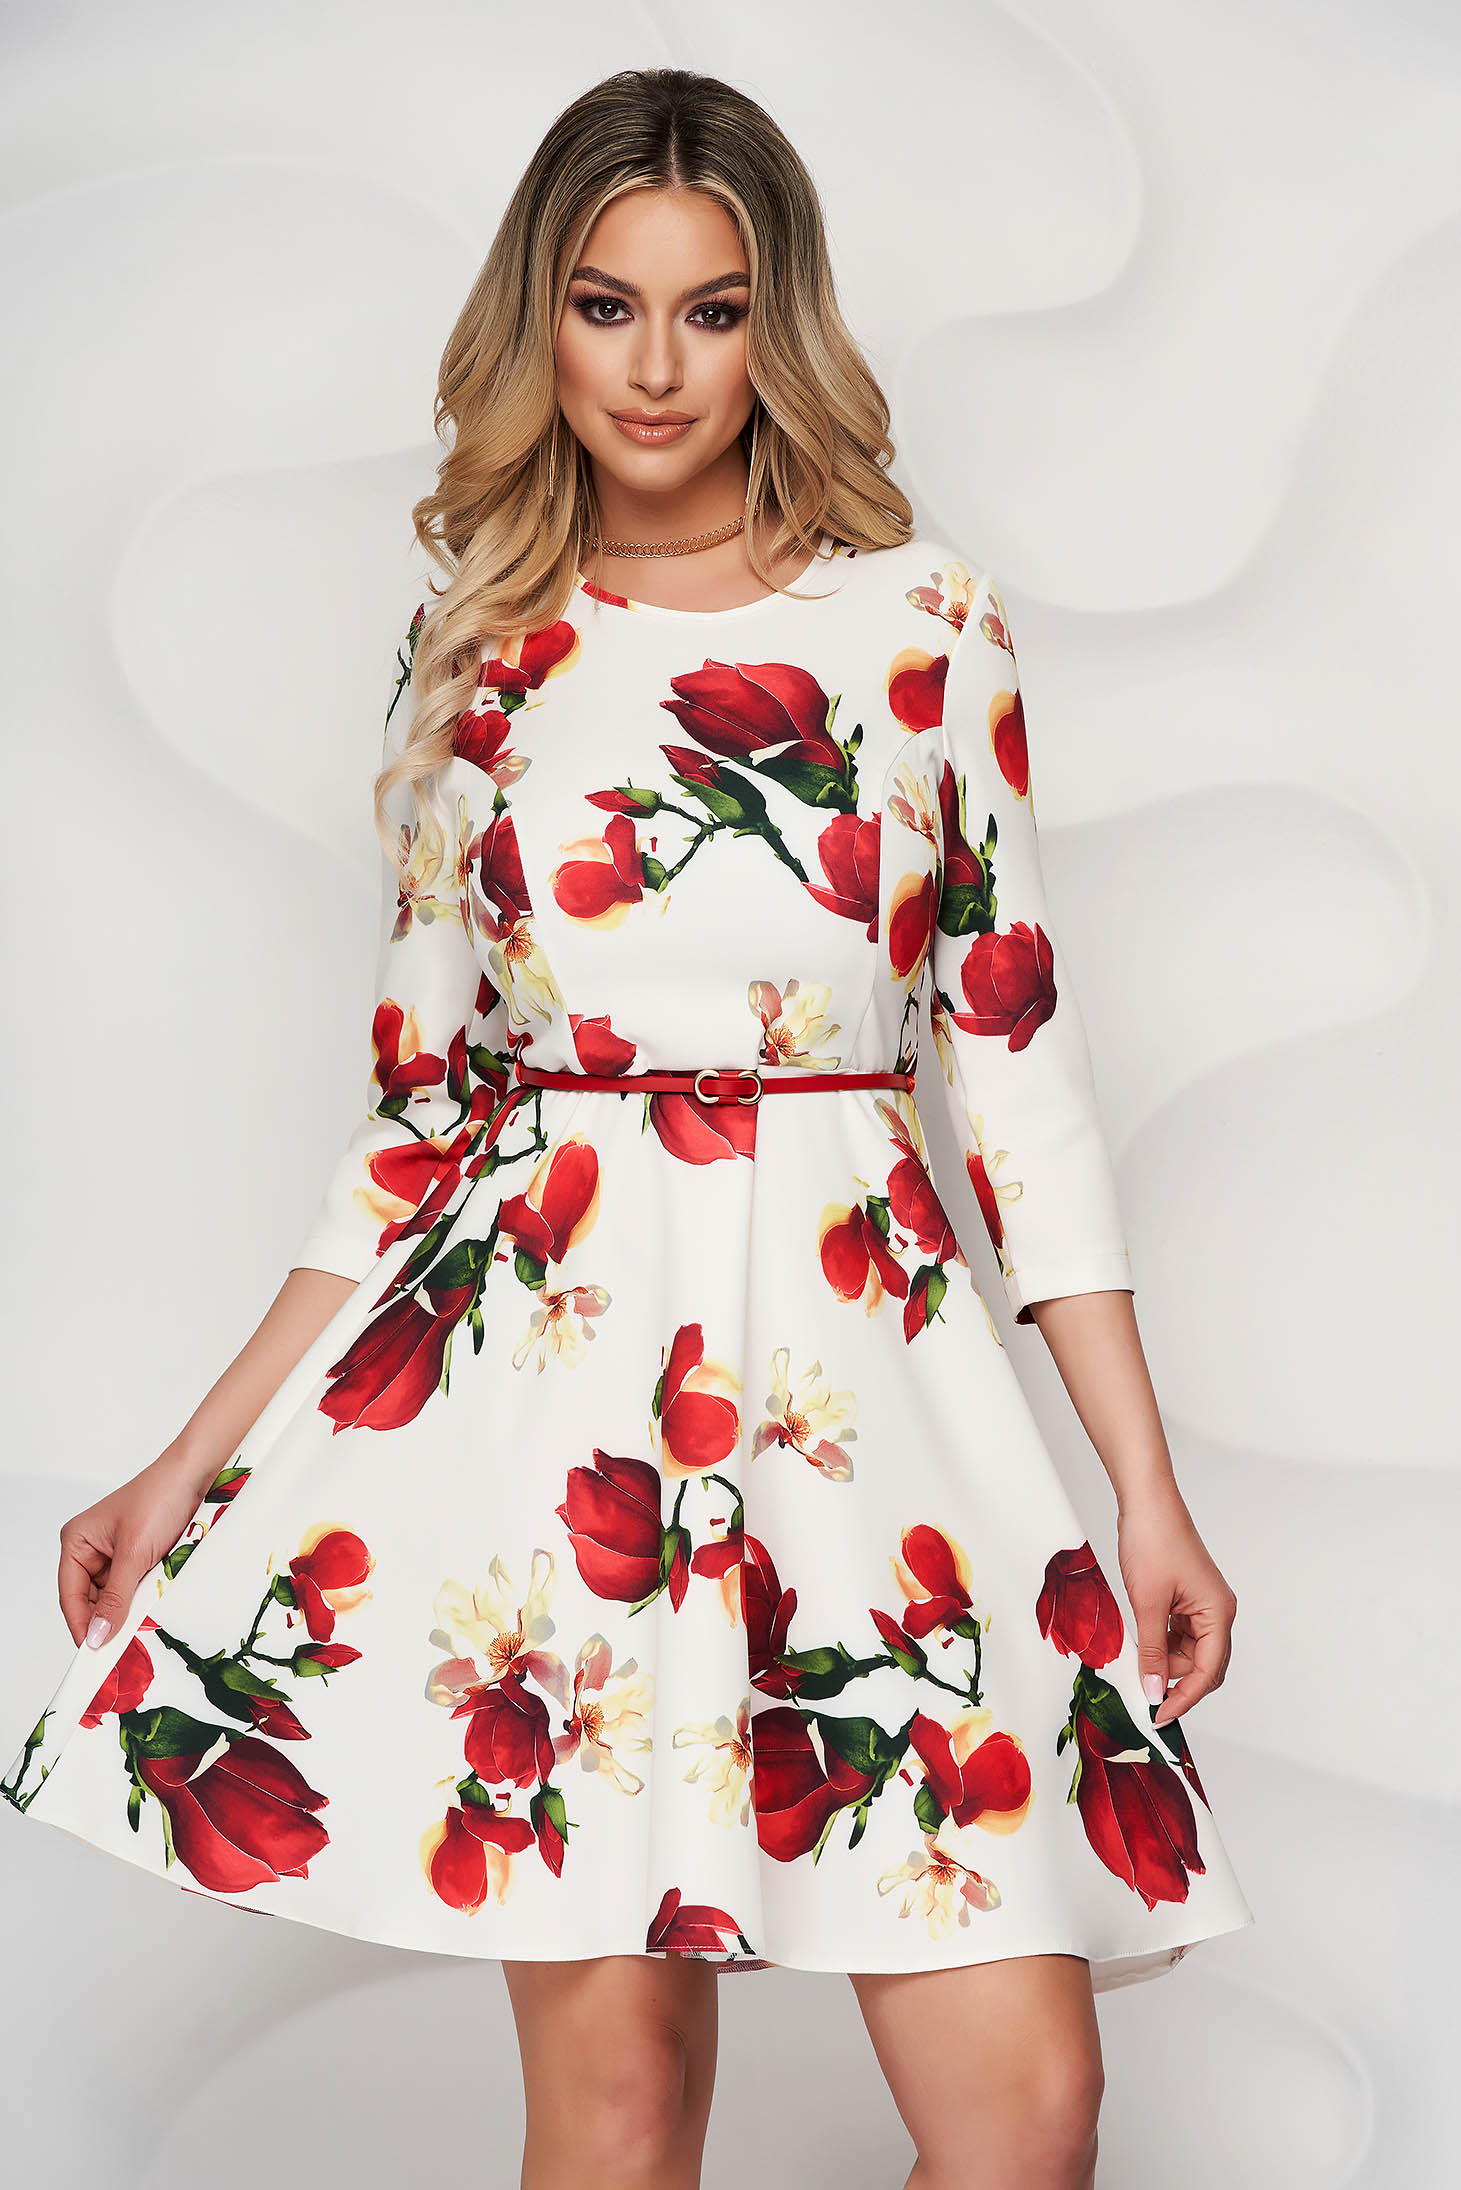 StarShinerS dress with floral print short cut cloche accessorized with belt